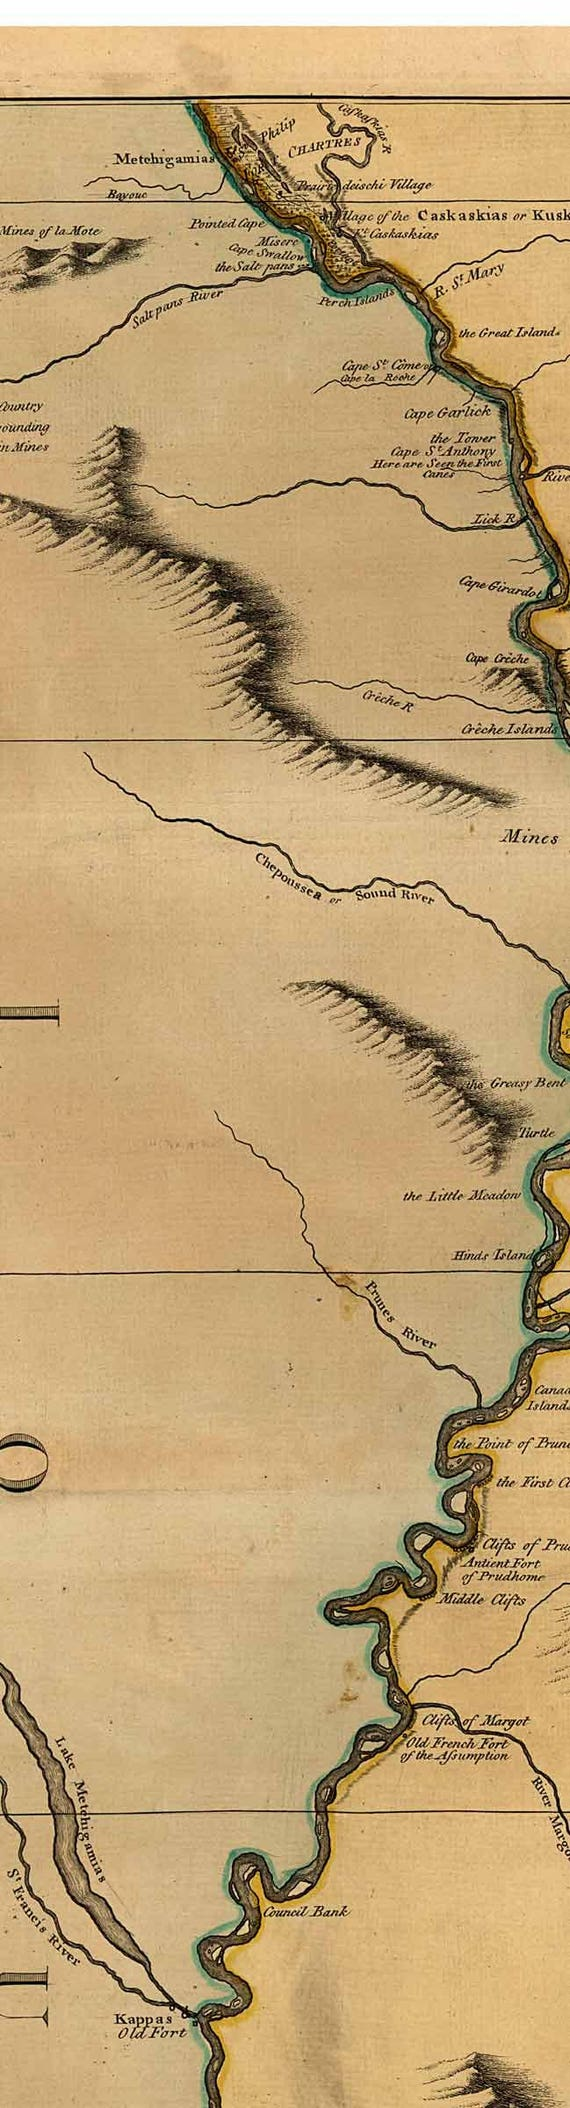 Mississippi River - 1765 - Old Map - Sayer - USA Regional Reprint